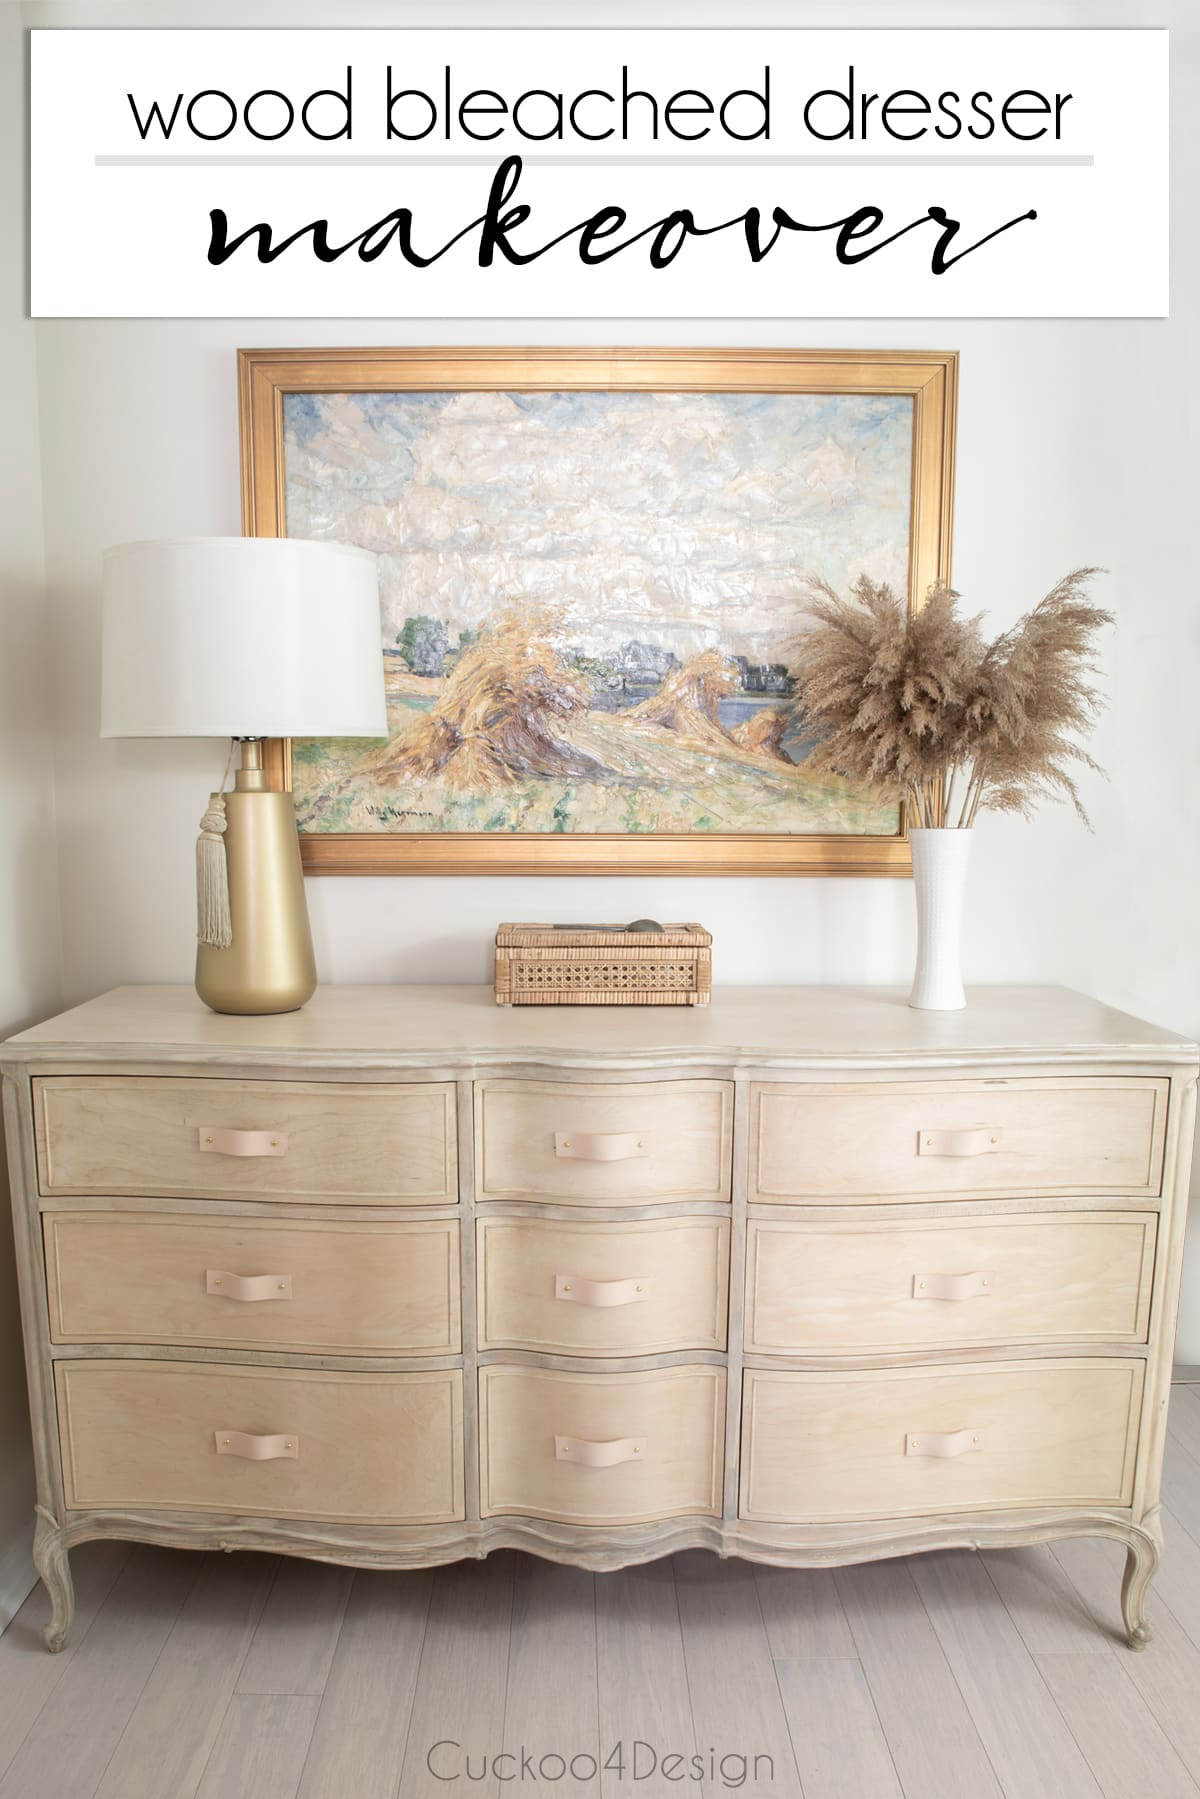 French Provincial Wood Bleach Dresser Makeover Cuckoo4design